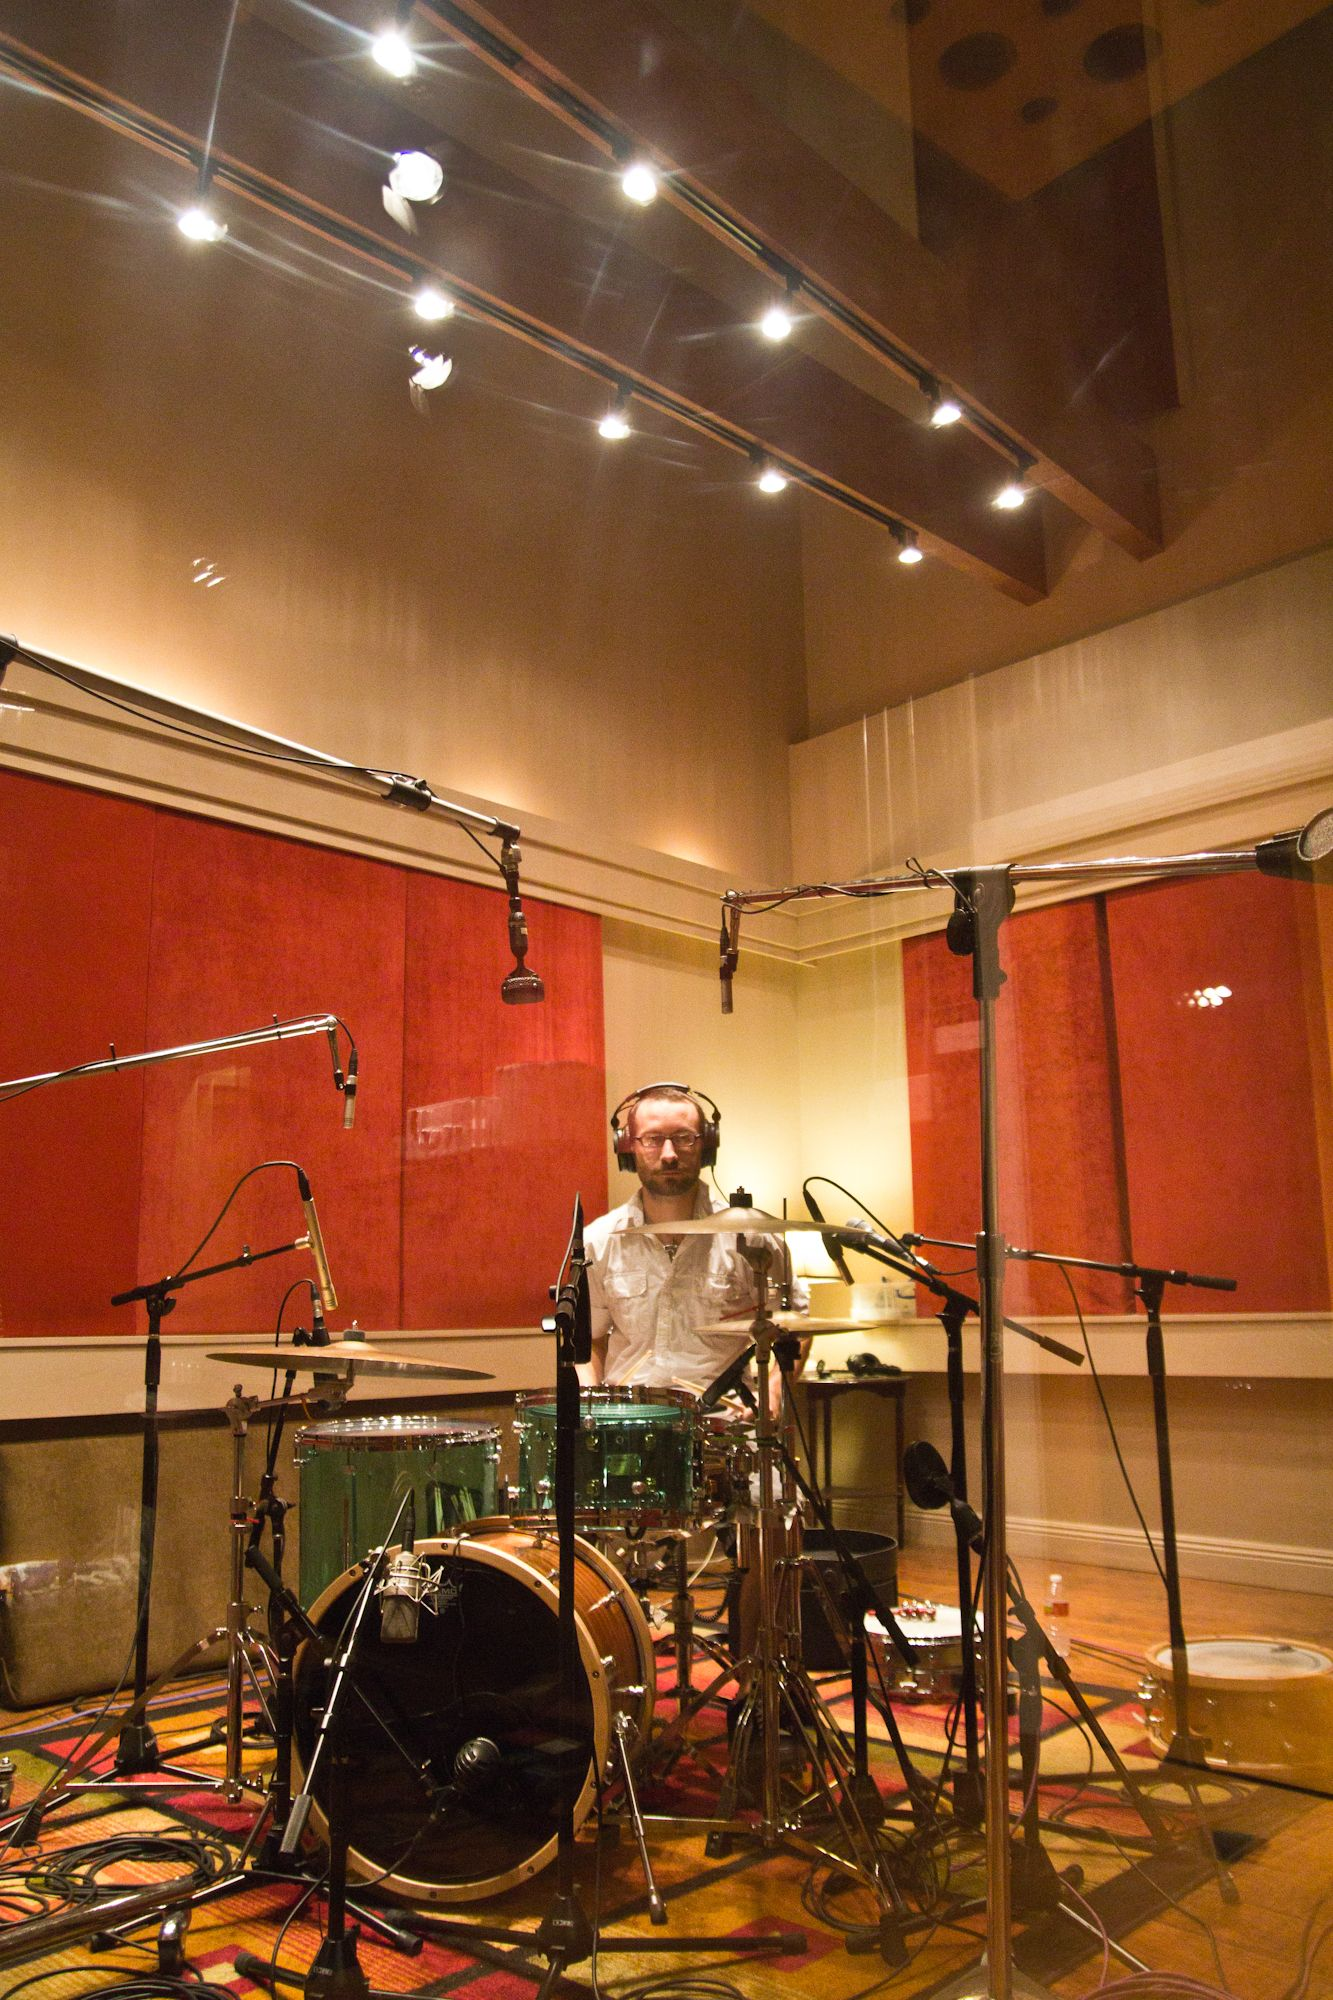 The Drum Room At The Music Shed Recording Studio In New